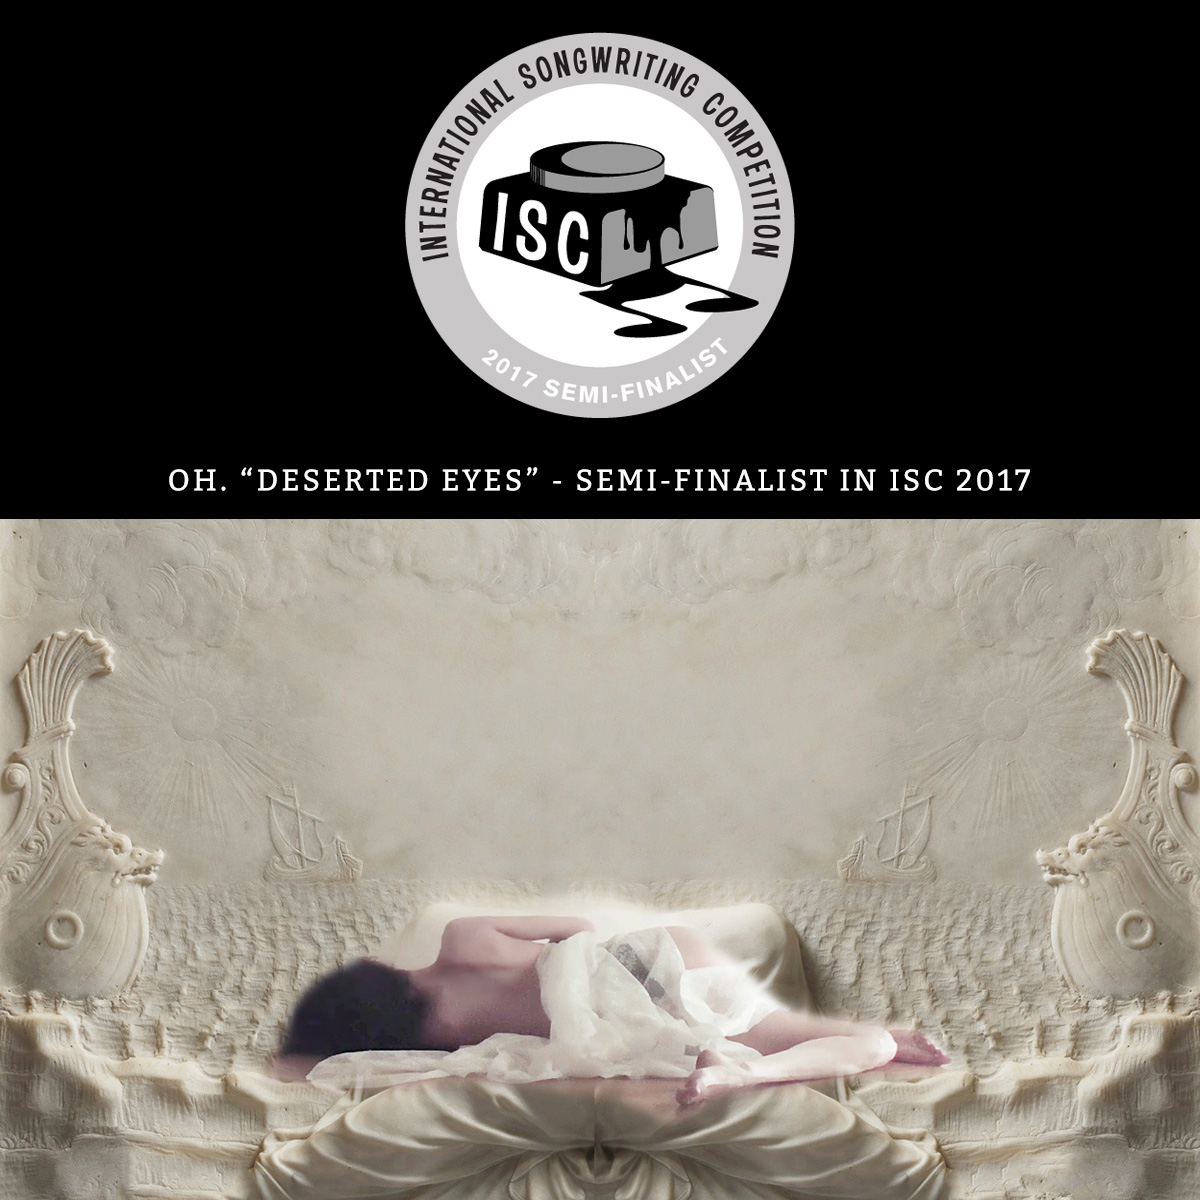 isc International Songwriting Contest - Olivia Hadjiioannou - Oh.